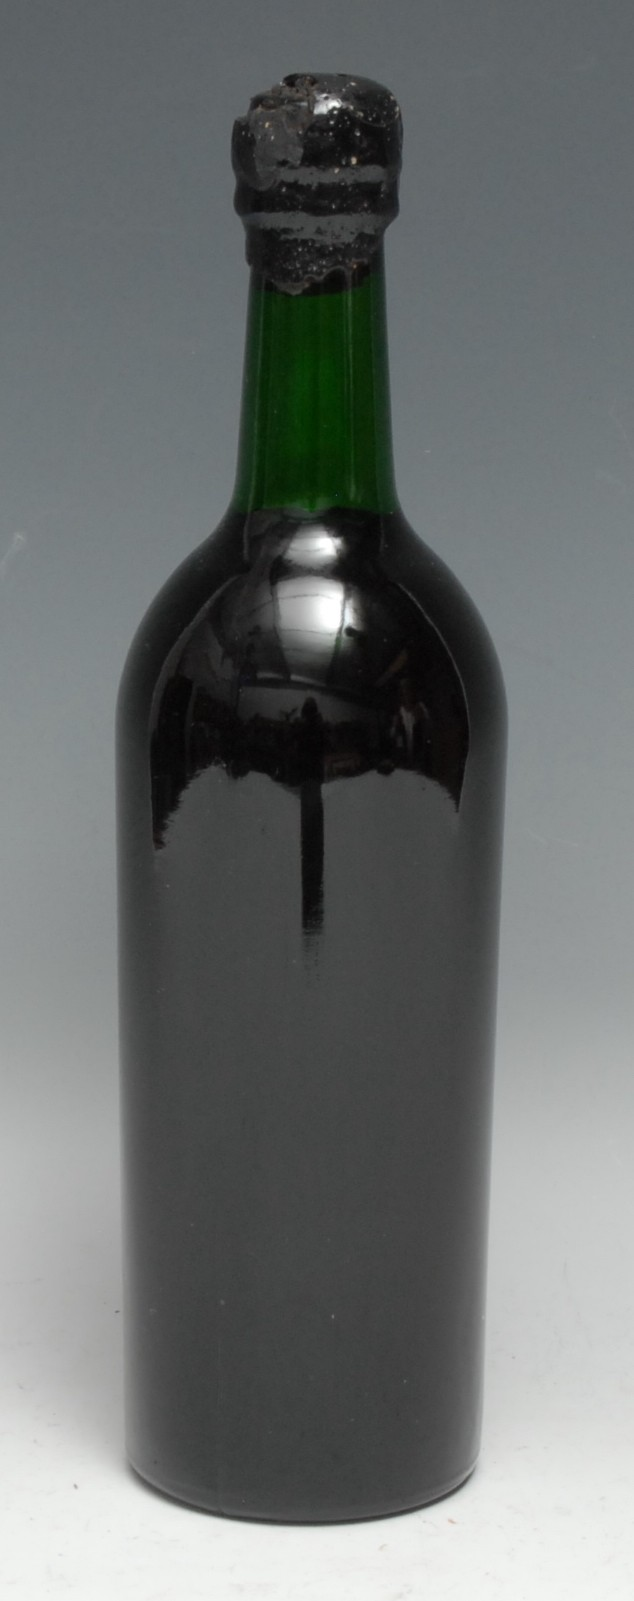 Bredon Manor 1871 Port, [75cl], typically unlabelled, level just within neck, black wax seal intact,